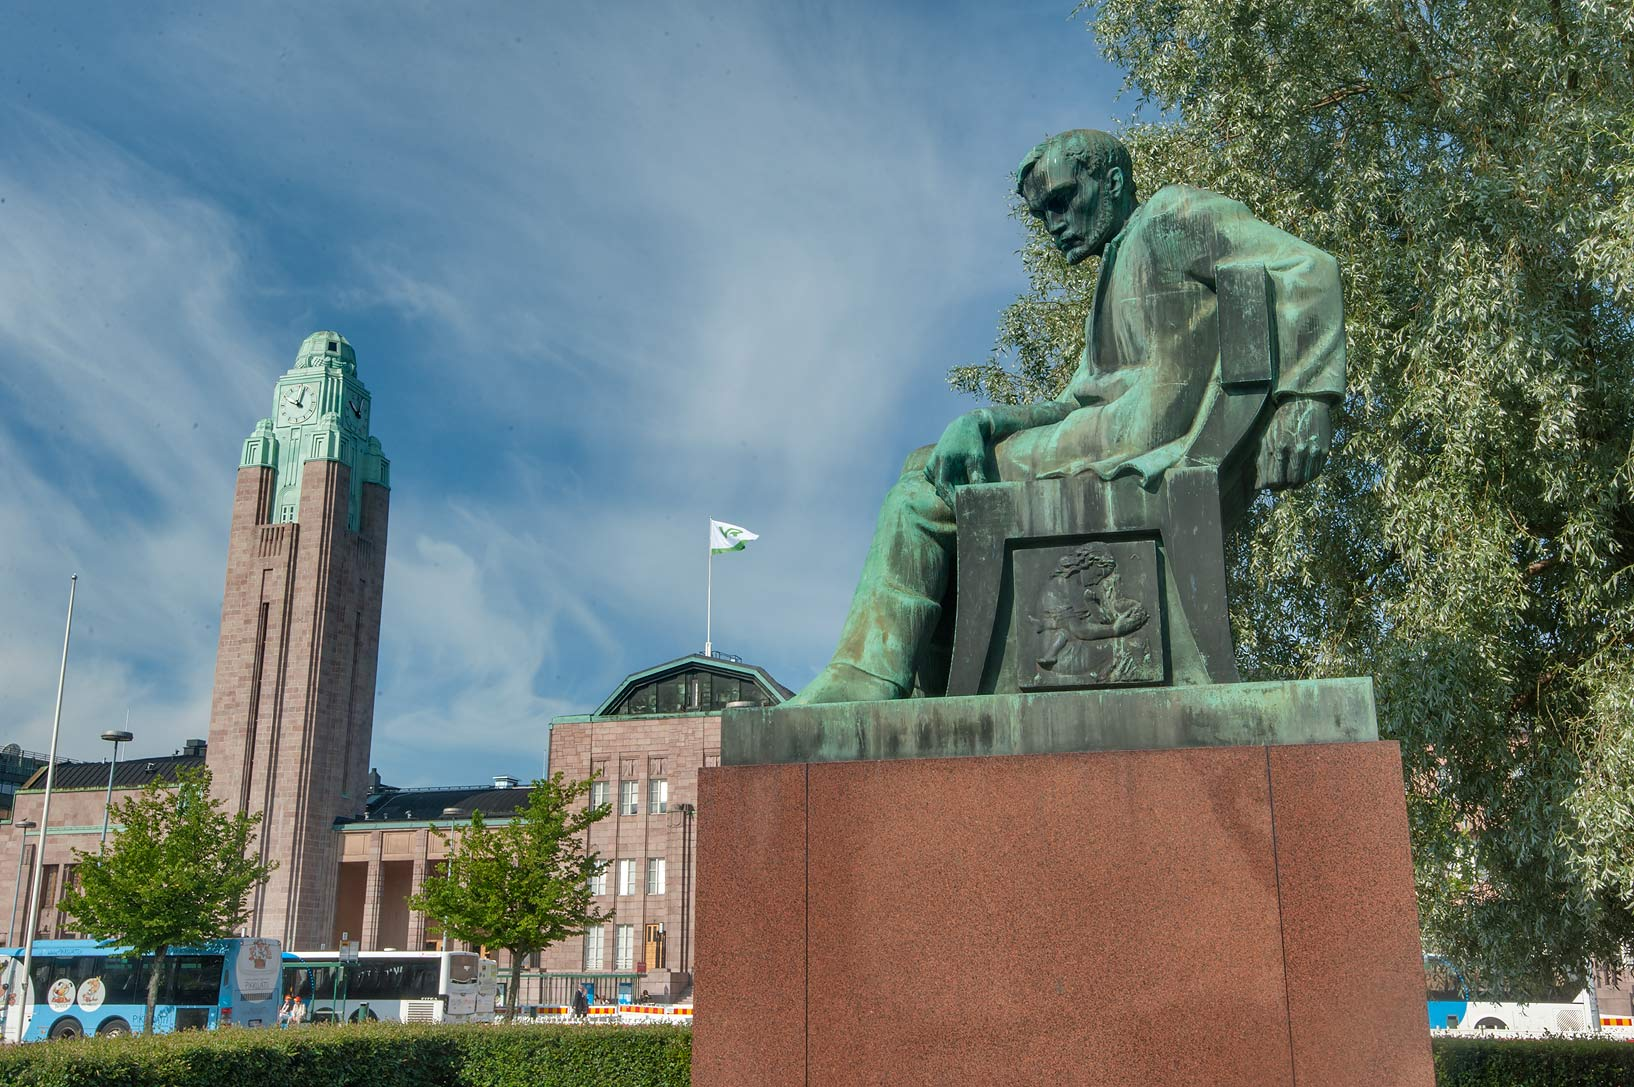 Statue of Aleksis Kivi and Central Railway Station from Railway Square. Helsinki, Finland